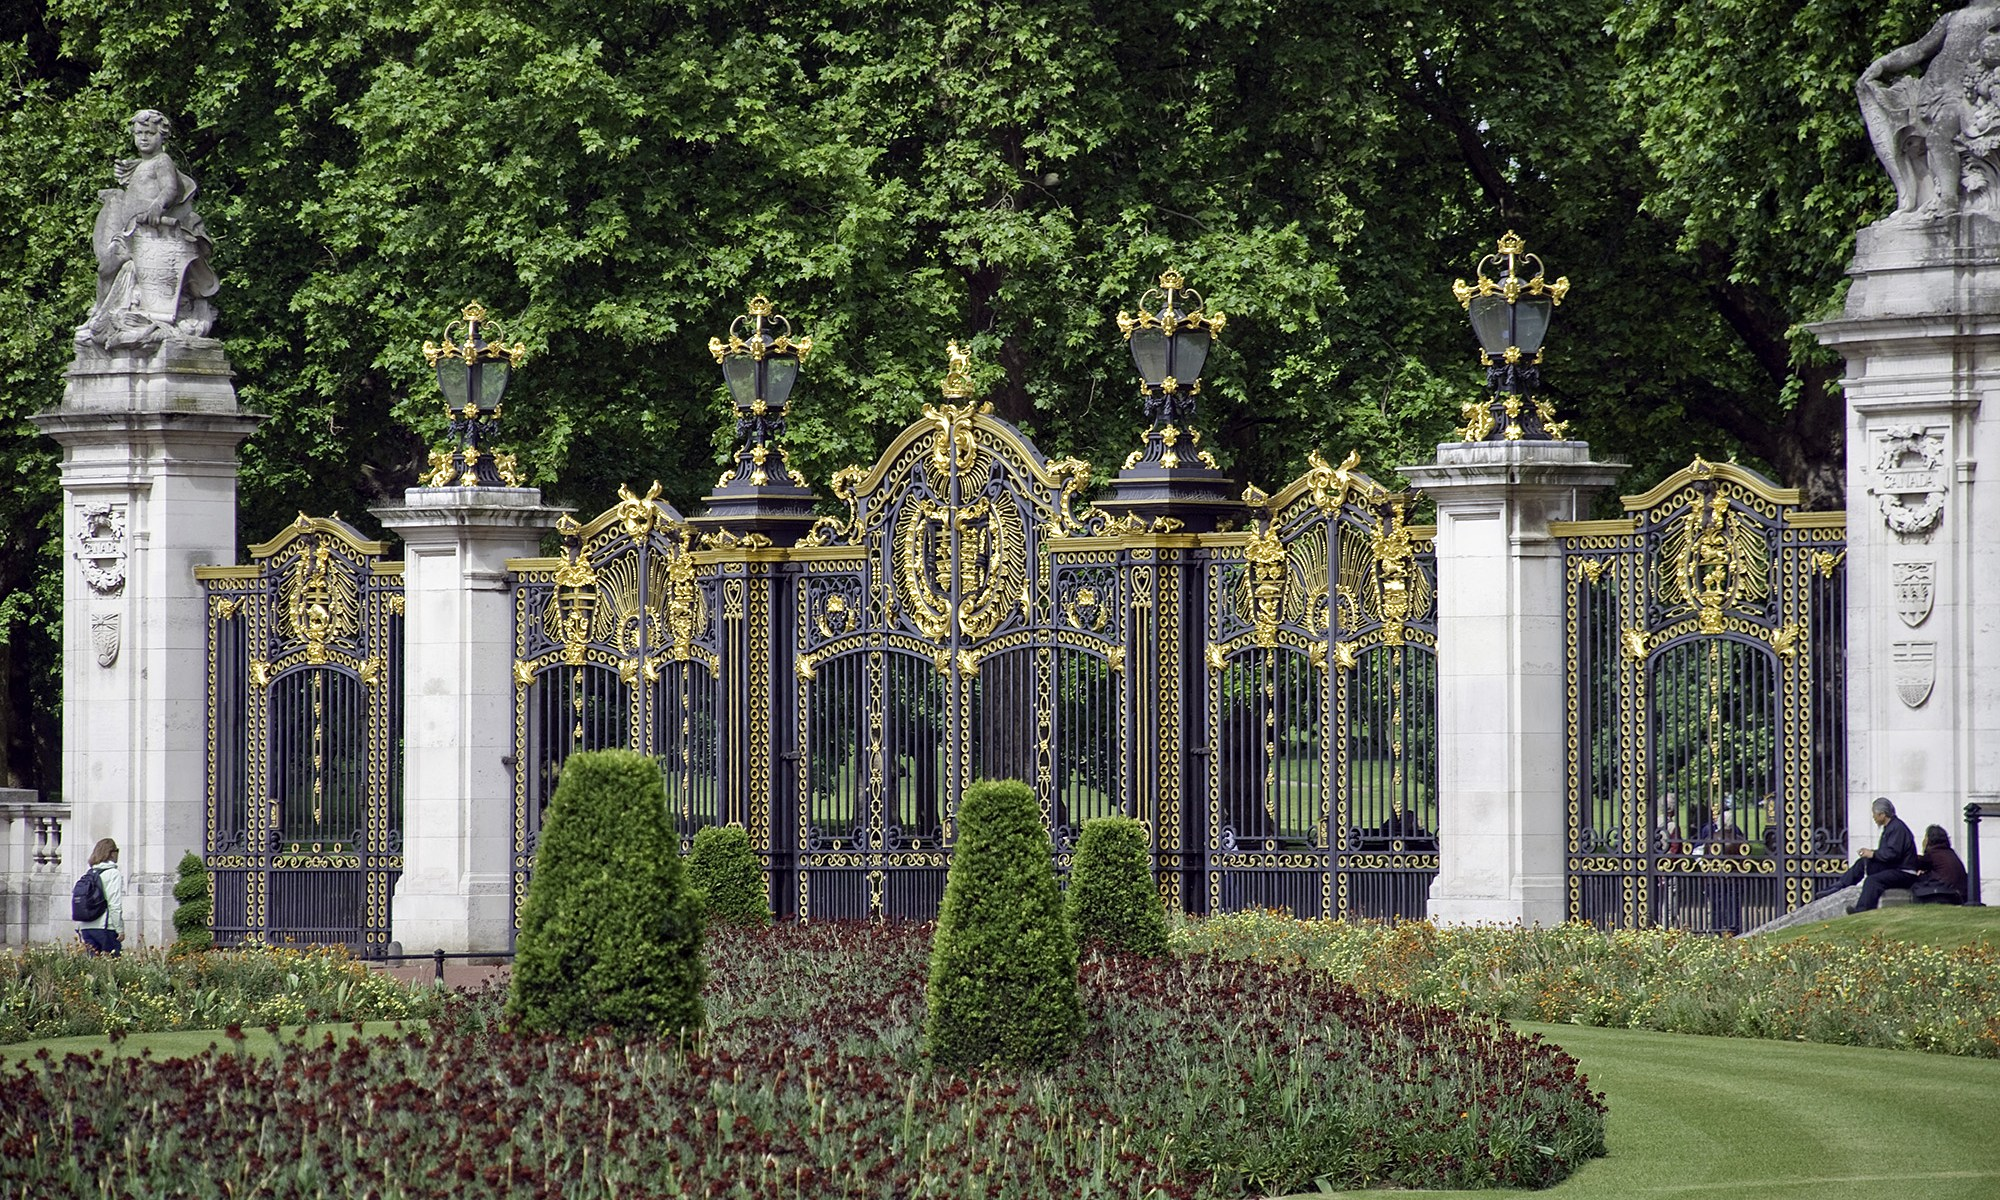 Canada Gate, Green Park, London